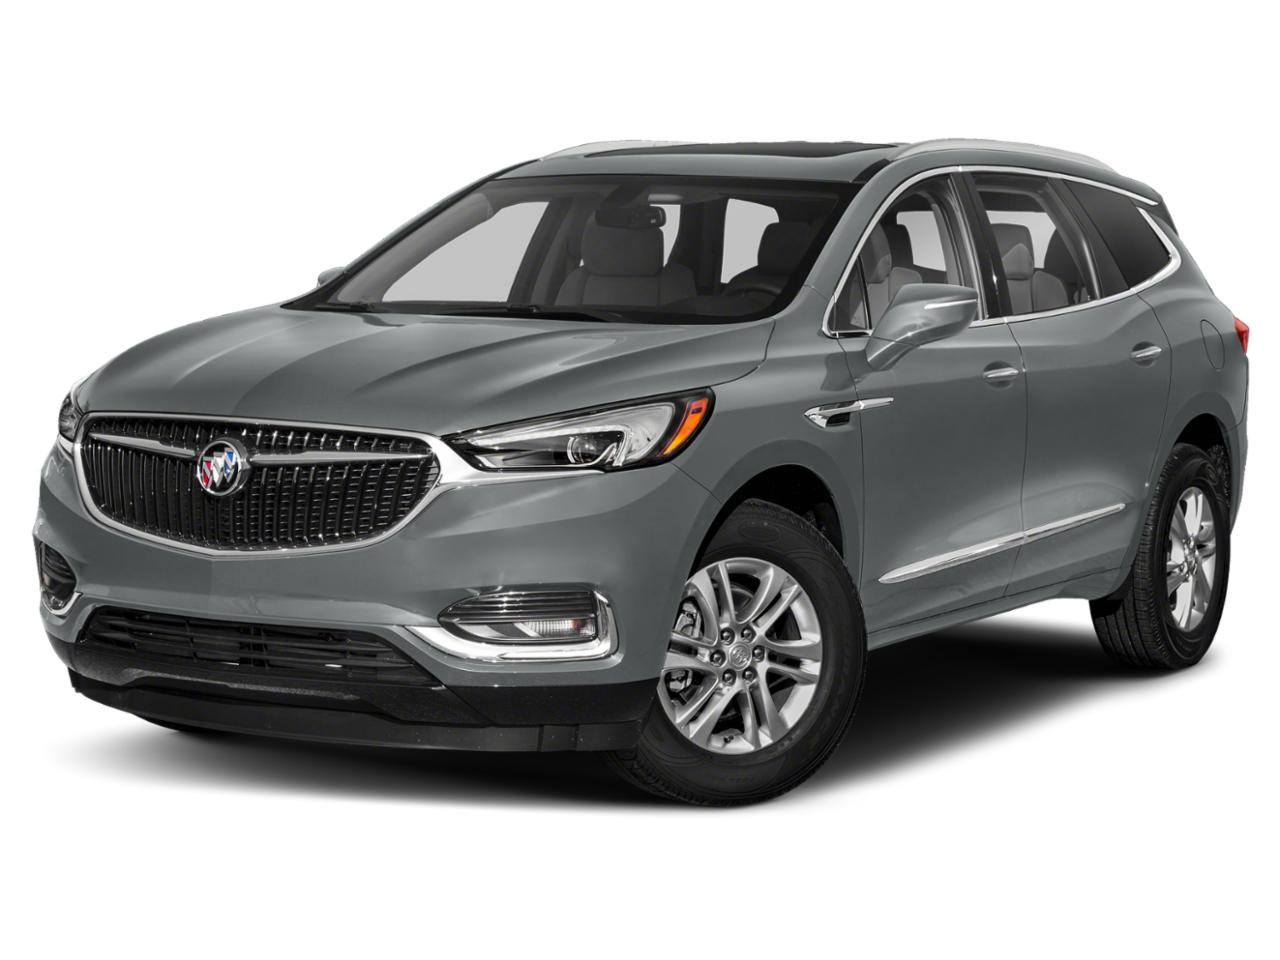 2020 Buick Enclave Avenir Awd In Norman, Ok | Stk# |Ferguson New 2021 Buick Enclave Oil Capacity, Owner's Manual, Problems